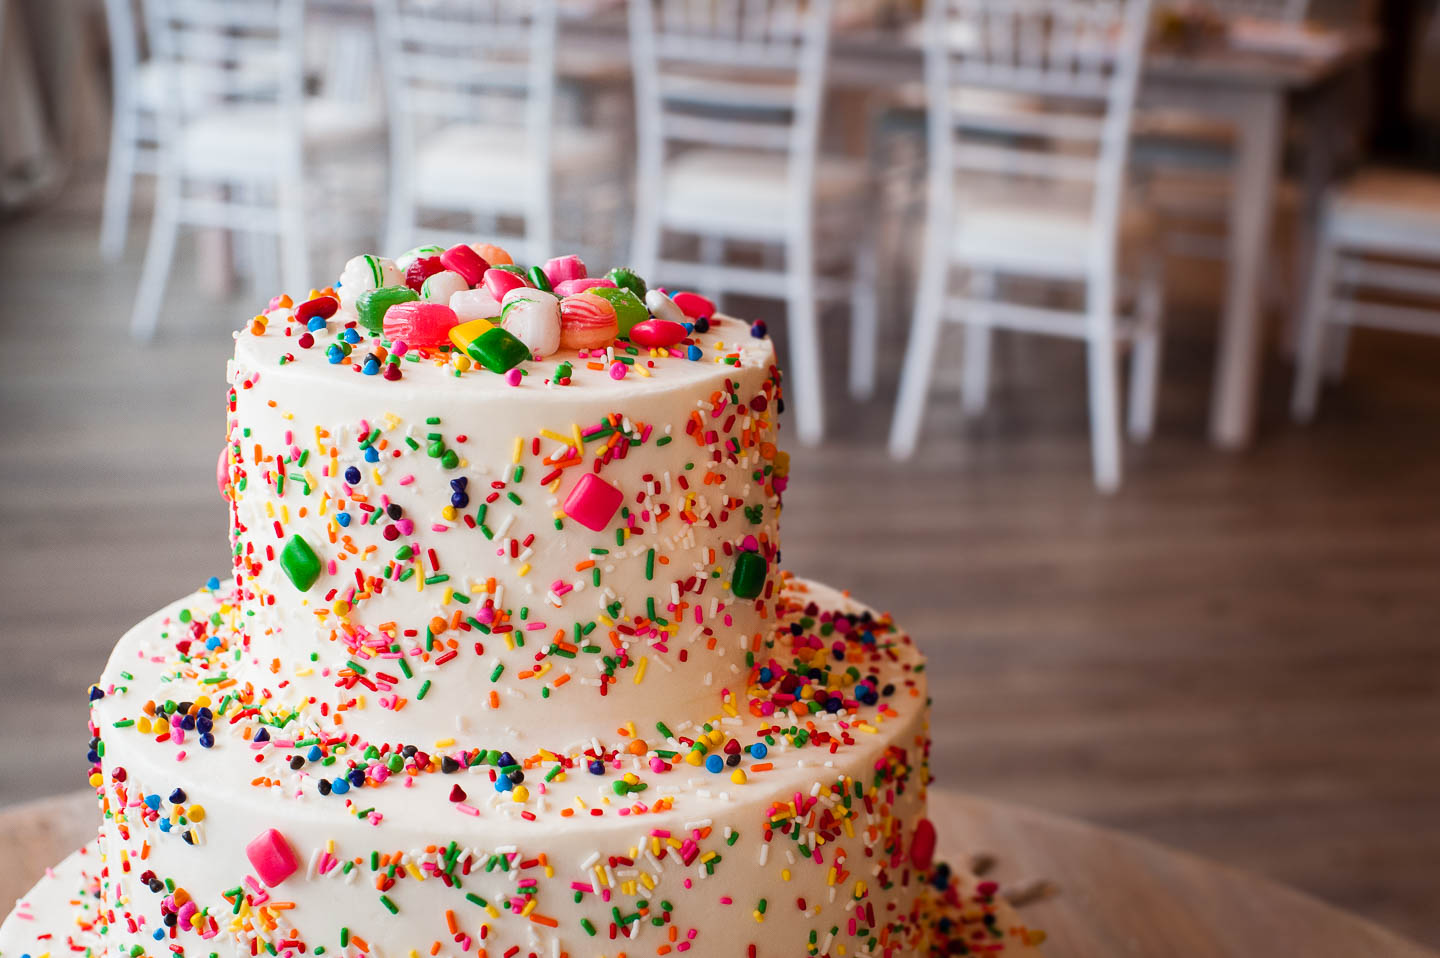 An amazing wedding cake covered in white frosting, sprinkles and chicklets